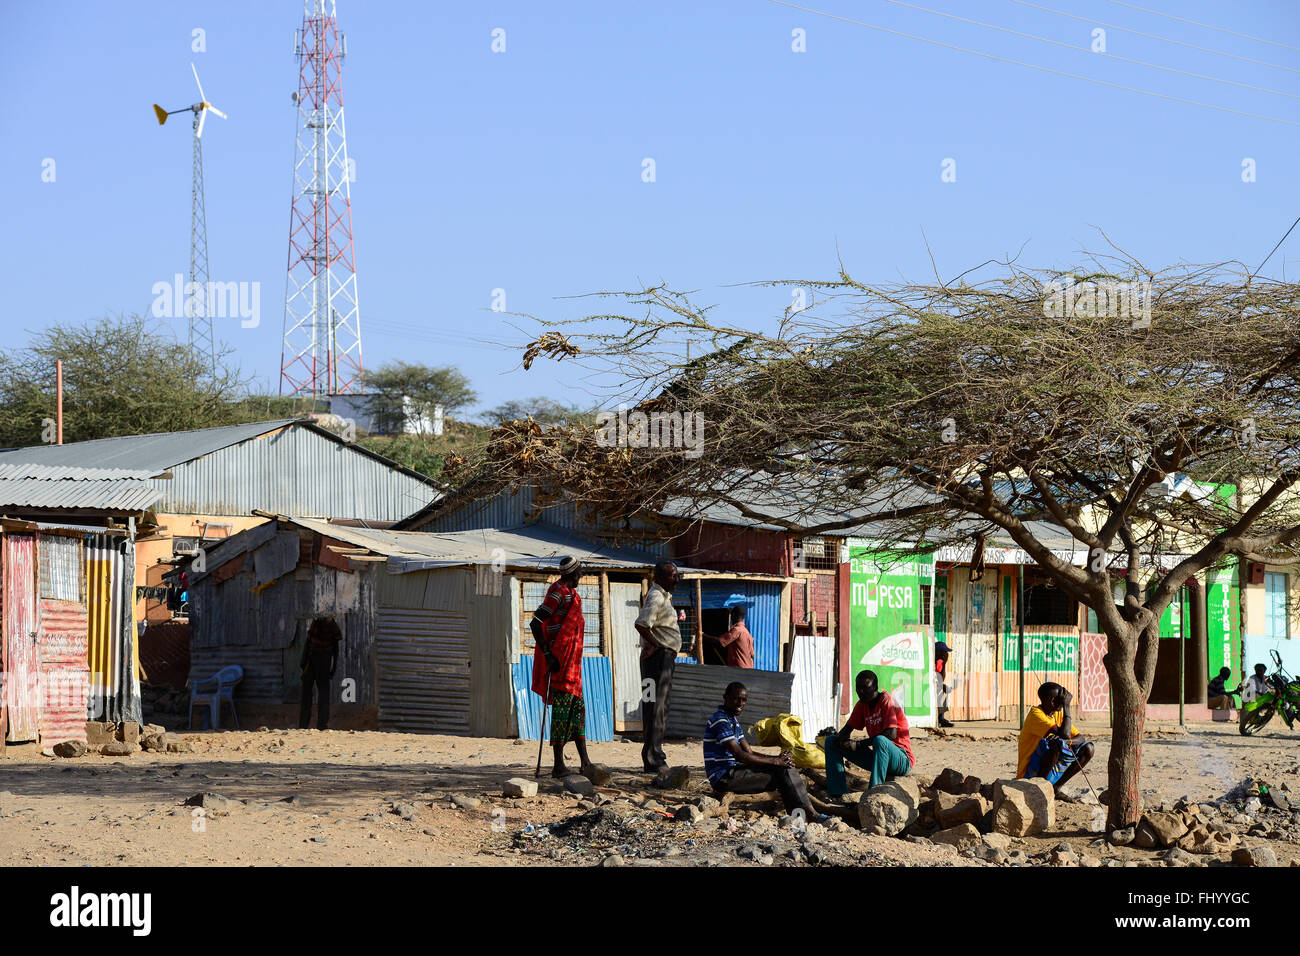 KENYA, Marsabit, village with lattice tower for mobile phone transmission and small windturbine, youngster infront - Stock Image